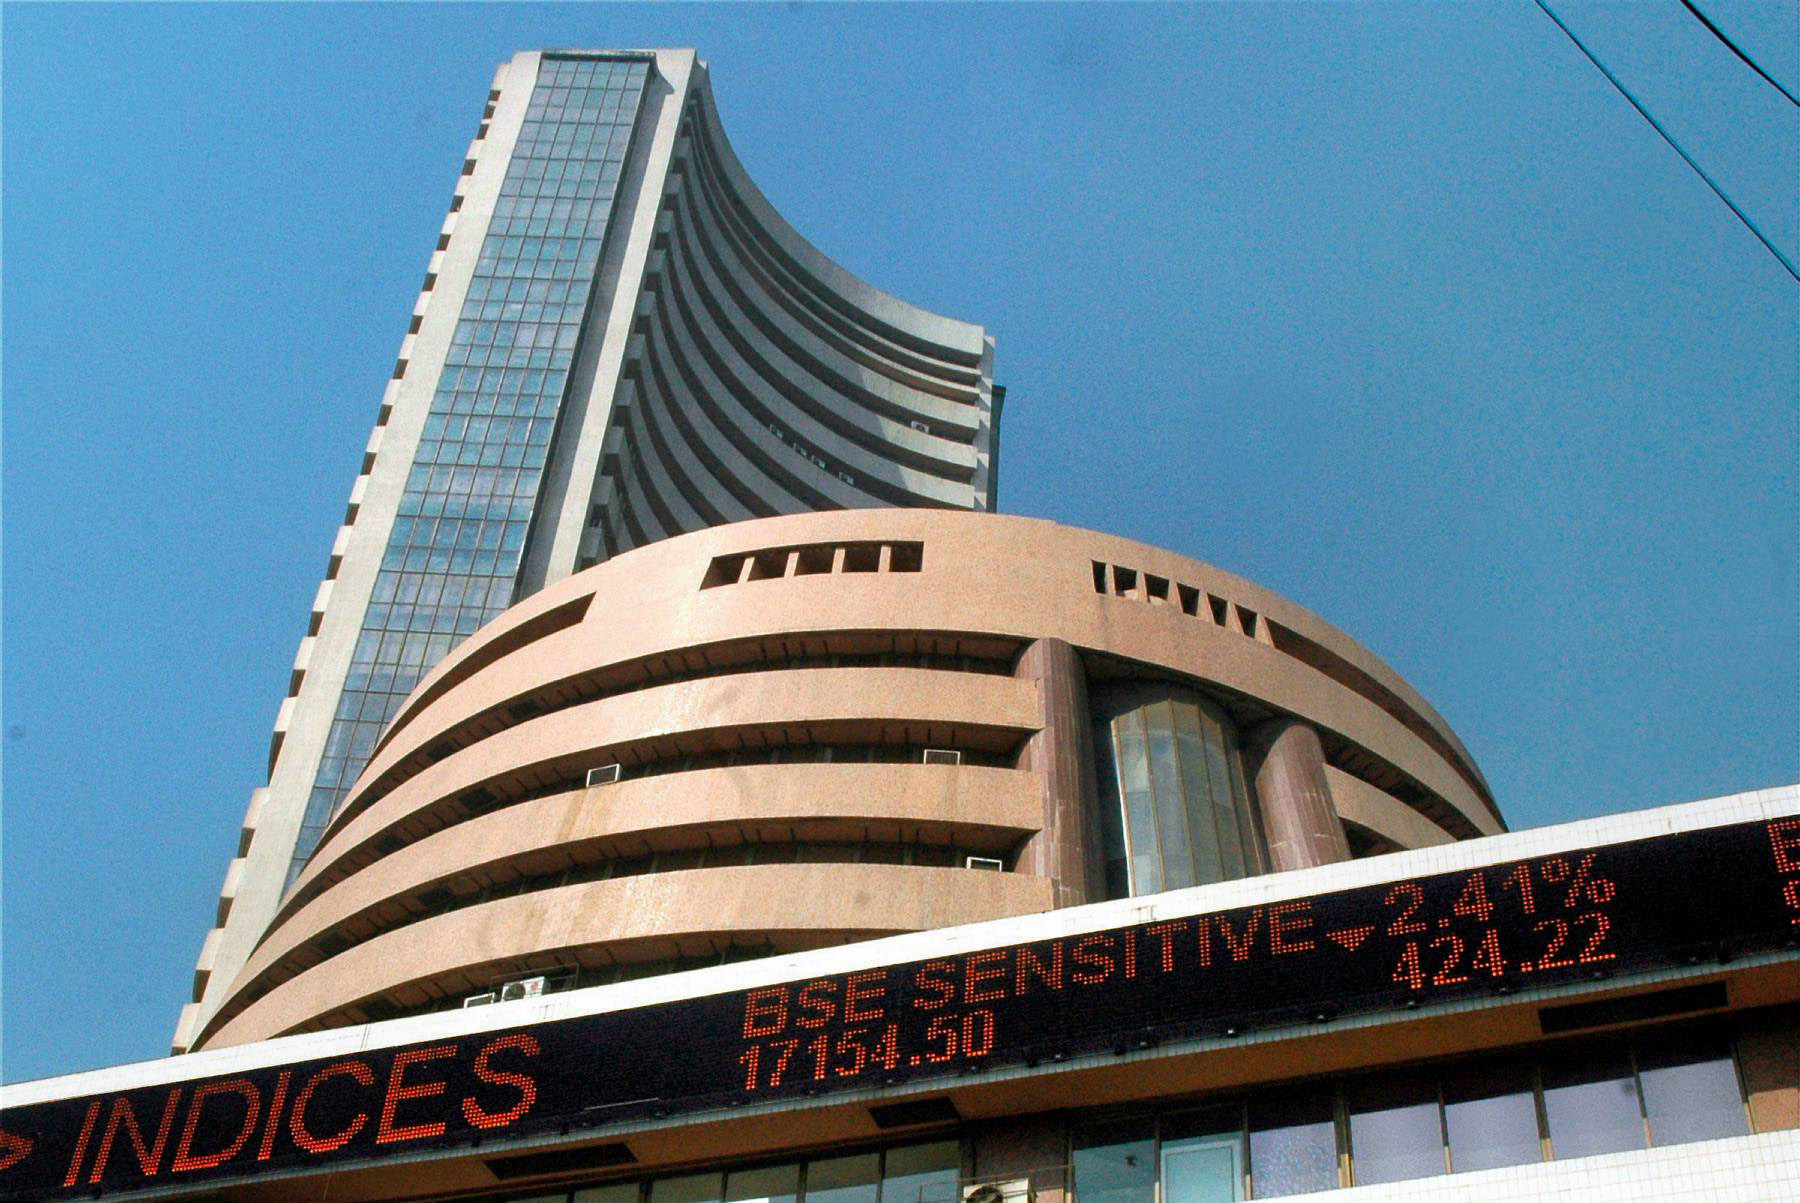 Sensex, BSE Sensex, Sensex today, morning sensex